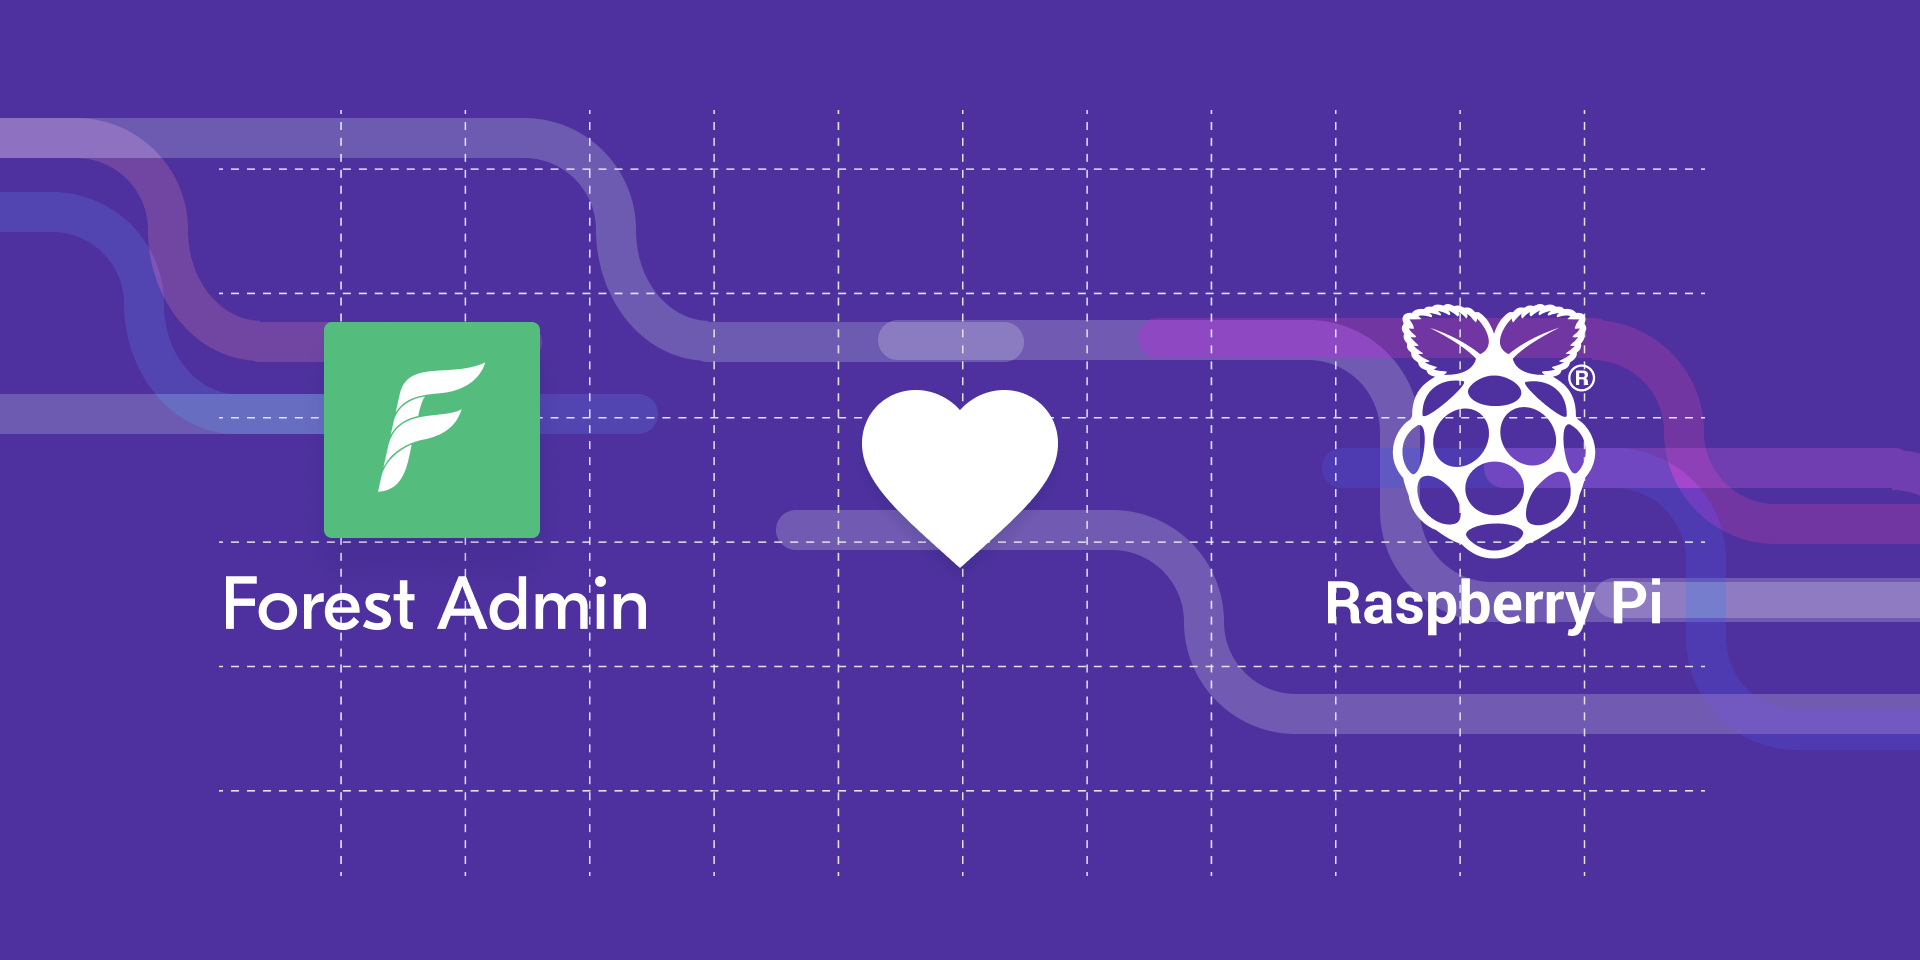 How Raspberry Pi uses Forest Admin to manage resellers and design partners